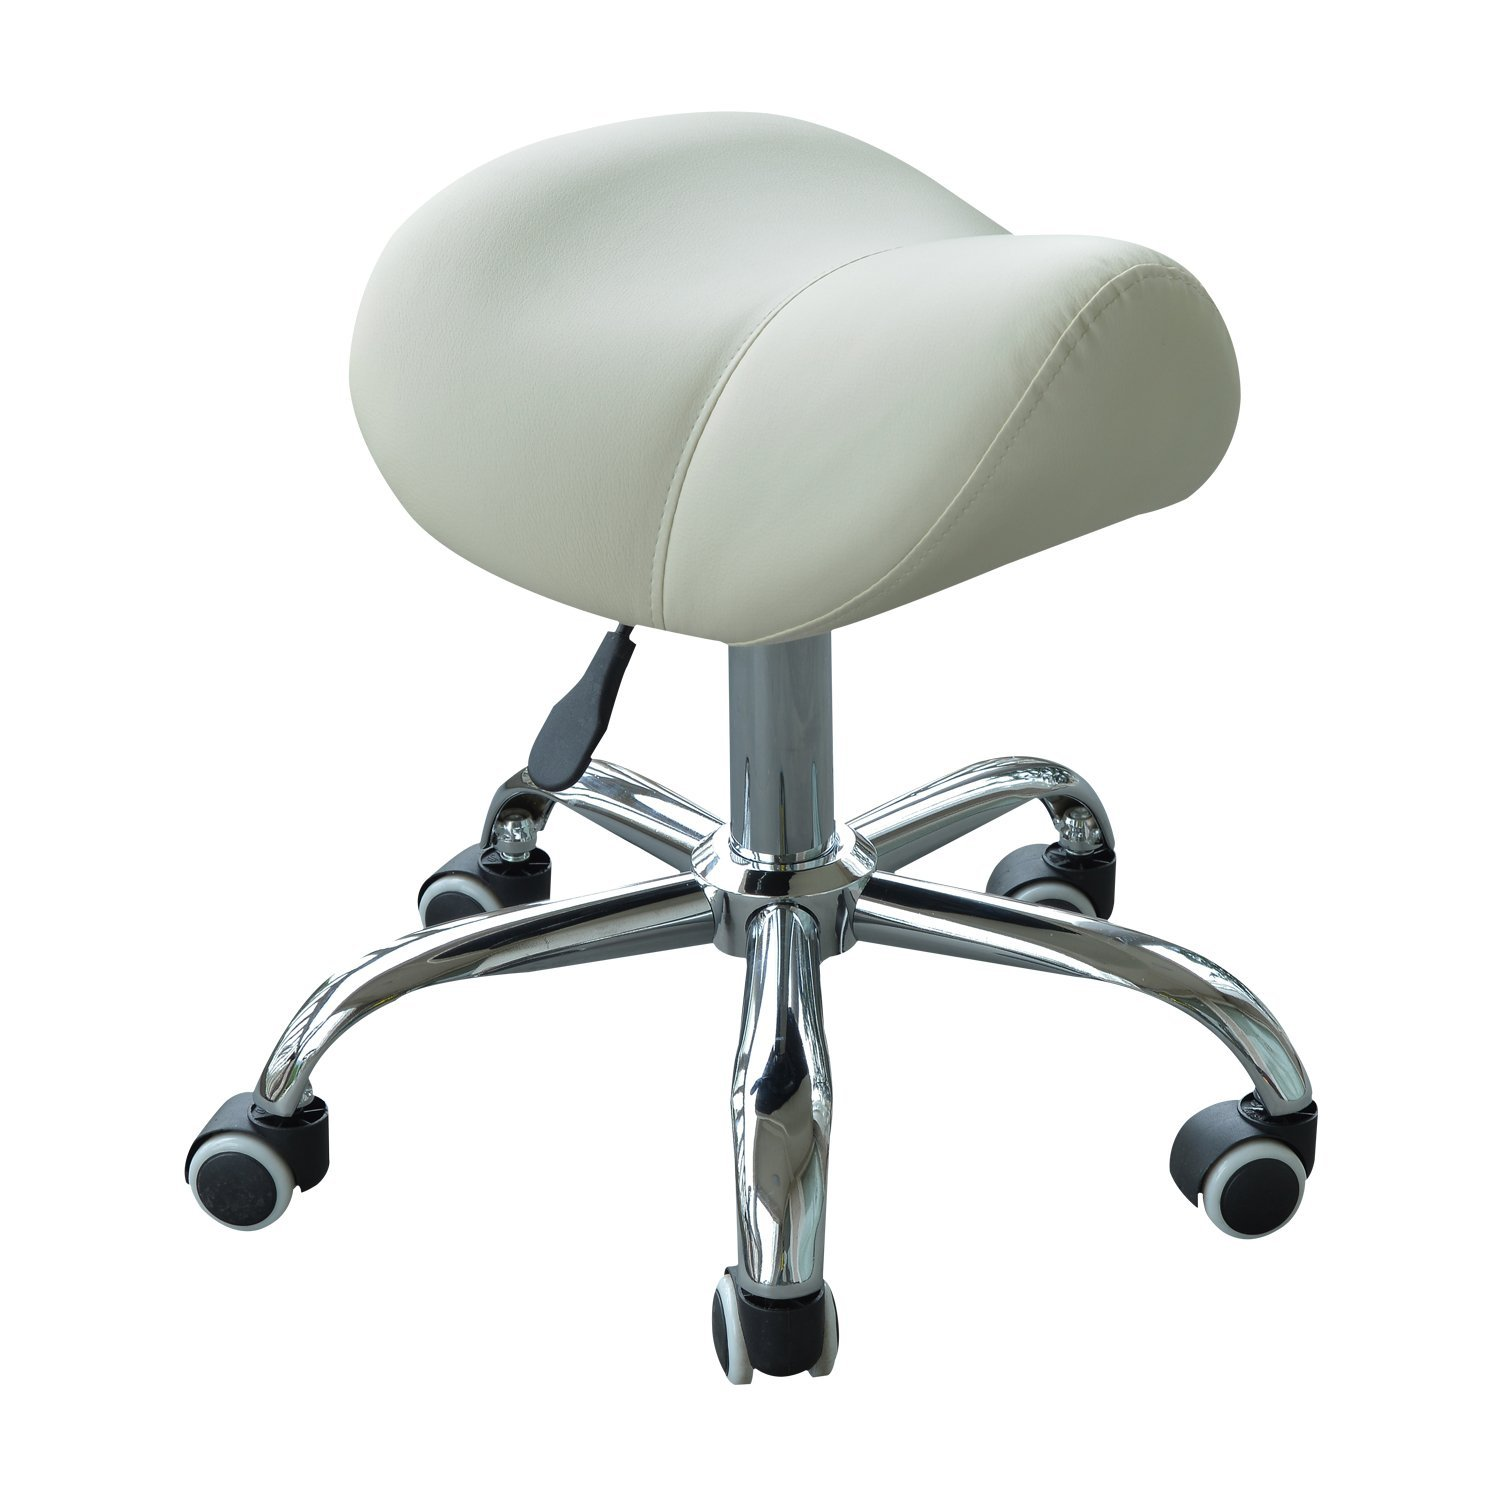 HOMCOM Stool Saddle For Hairdresser Salon Aesthetic Height Adjustable With Wheels Steel 52×53×49-61 Cm Cream